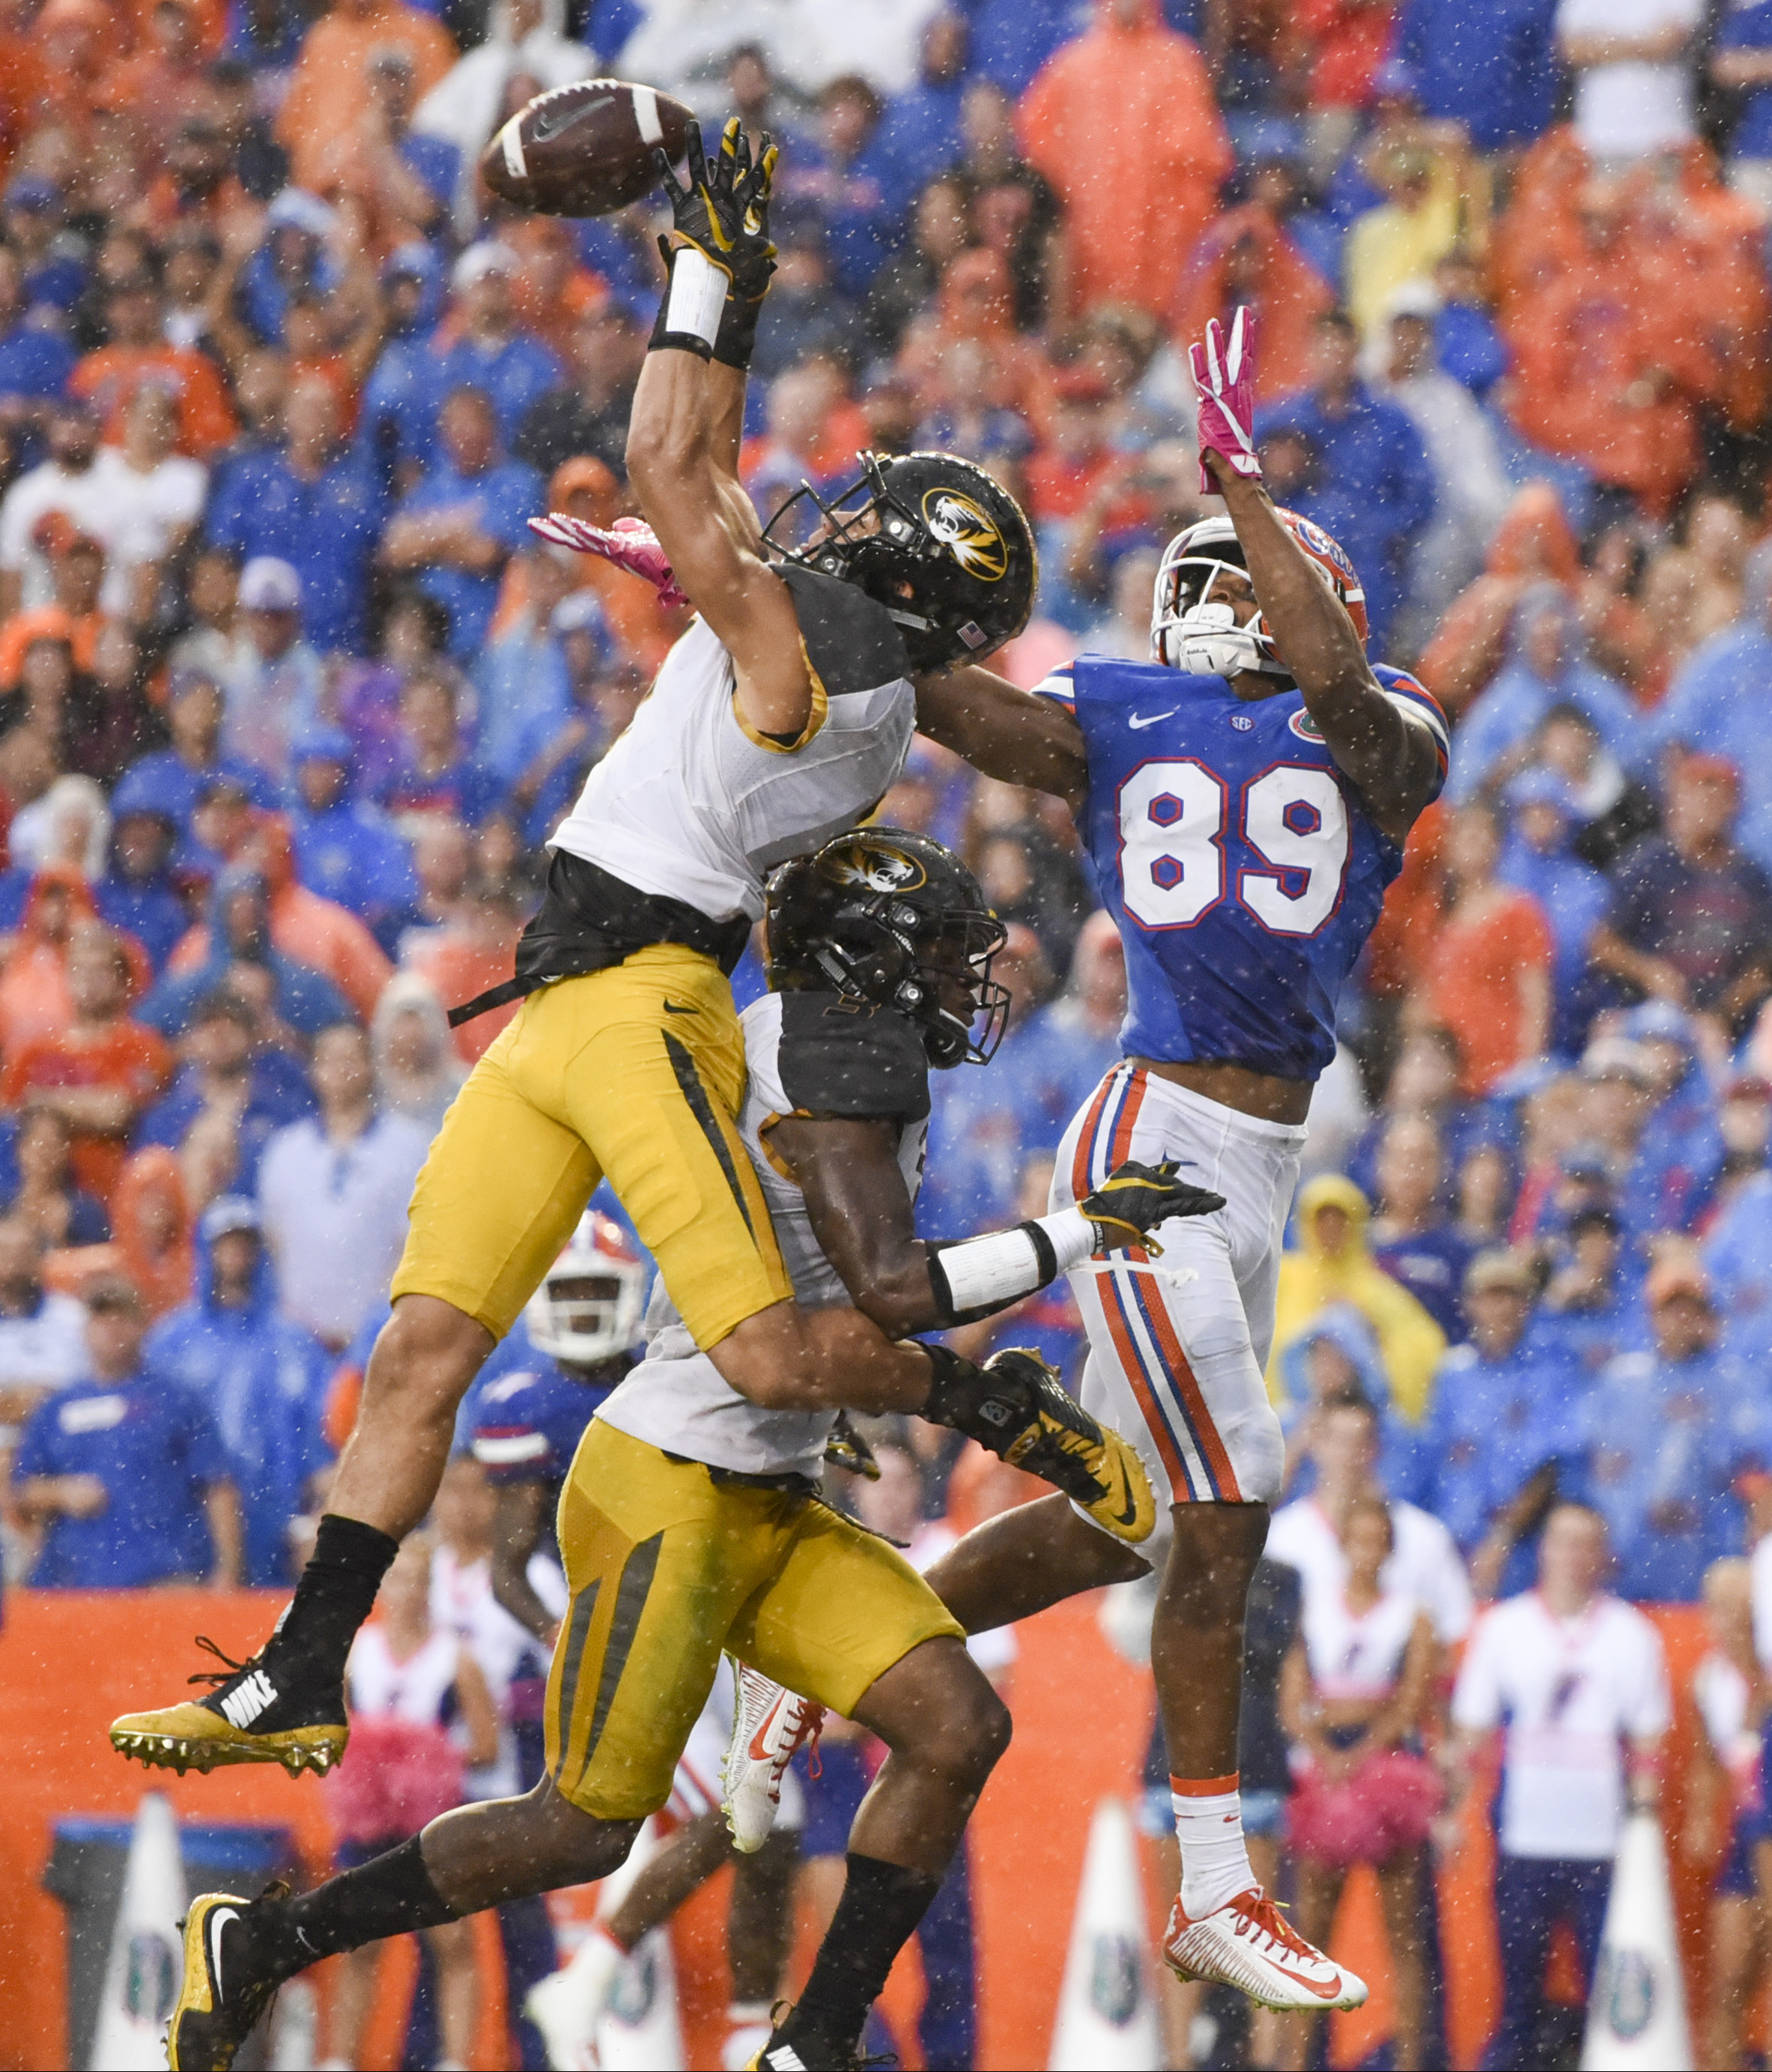 Missouri Tigers safety Cam Hilton (7) nearly intercepts a pass intended for Florida Gators wide receiver Tyrie Cleveland (89) in the third quarter during the game between the Florida Gators and the Missouri Tigers in Ben Hill Griffin Stadium on Saturday, Oct. 15, 2016, in Gainesville, Fla. The Gators beat Missouri 40-14.